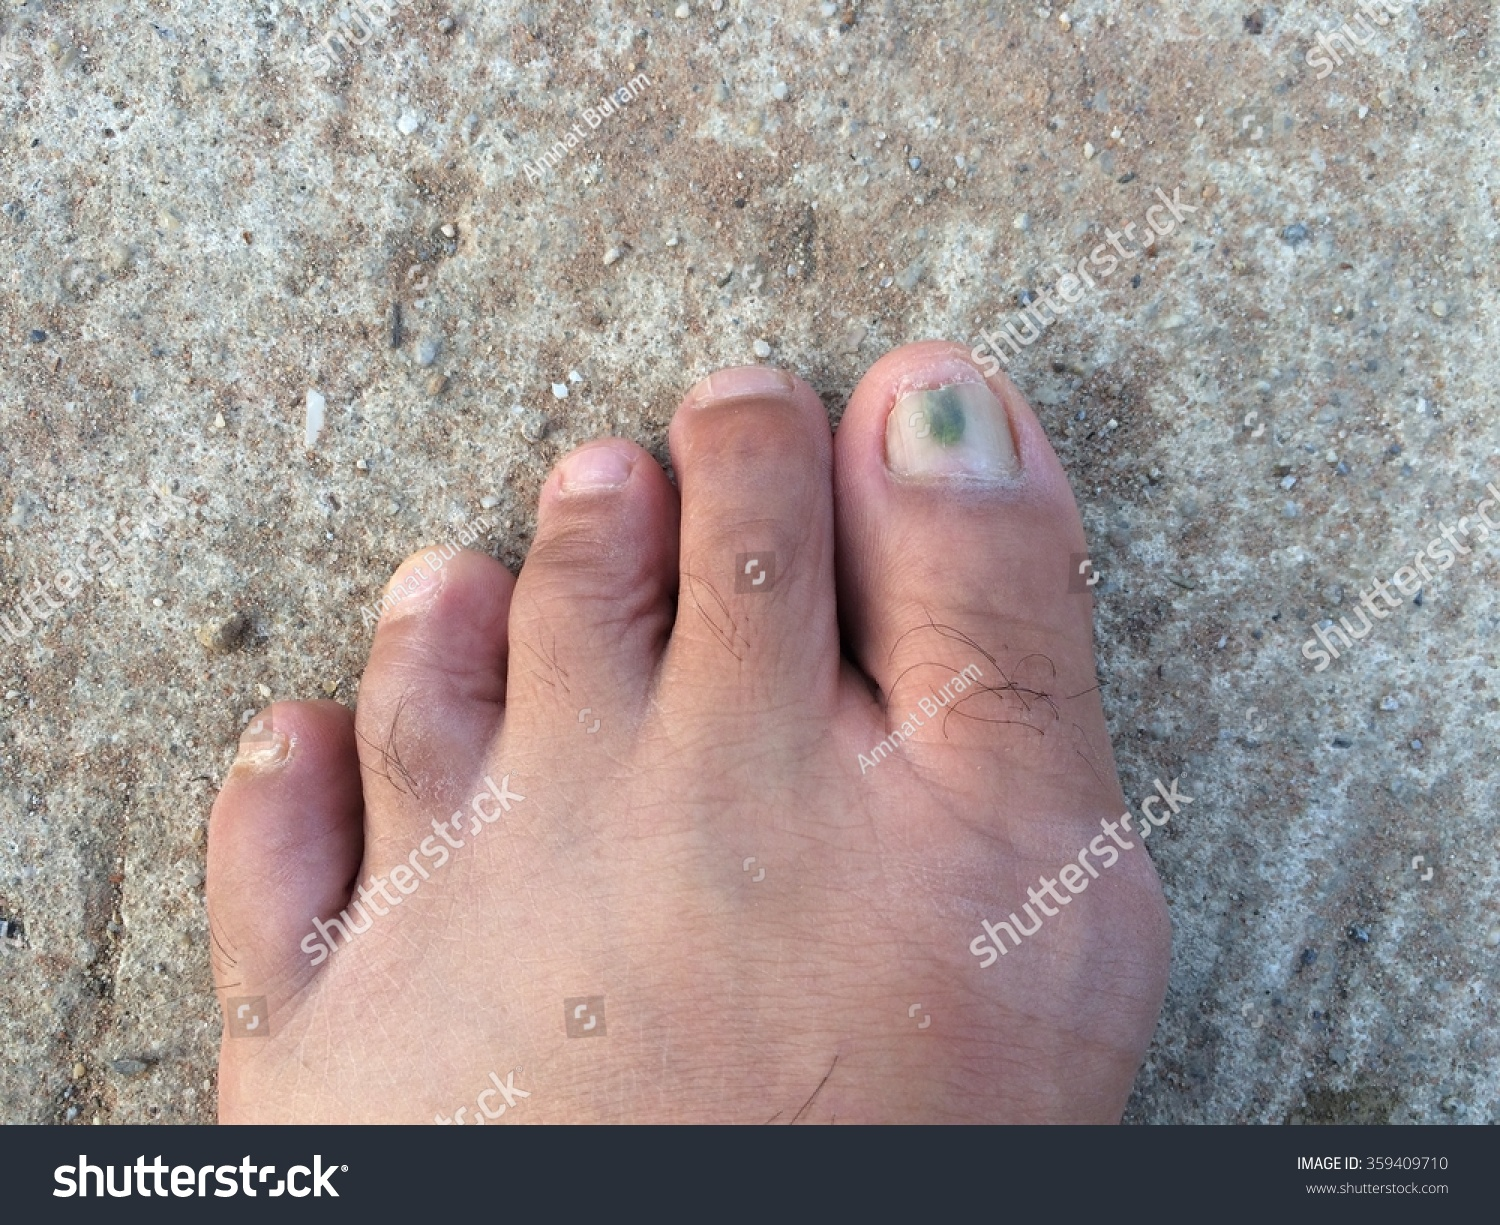 Toenail Infections Stock Photo (100% Legal Protection) 359409710 ...